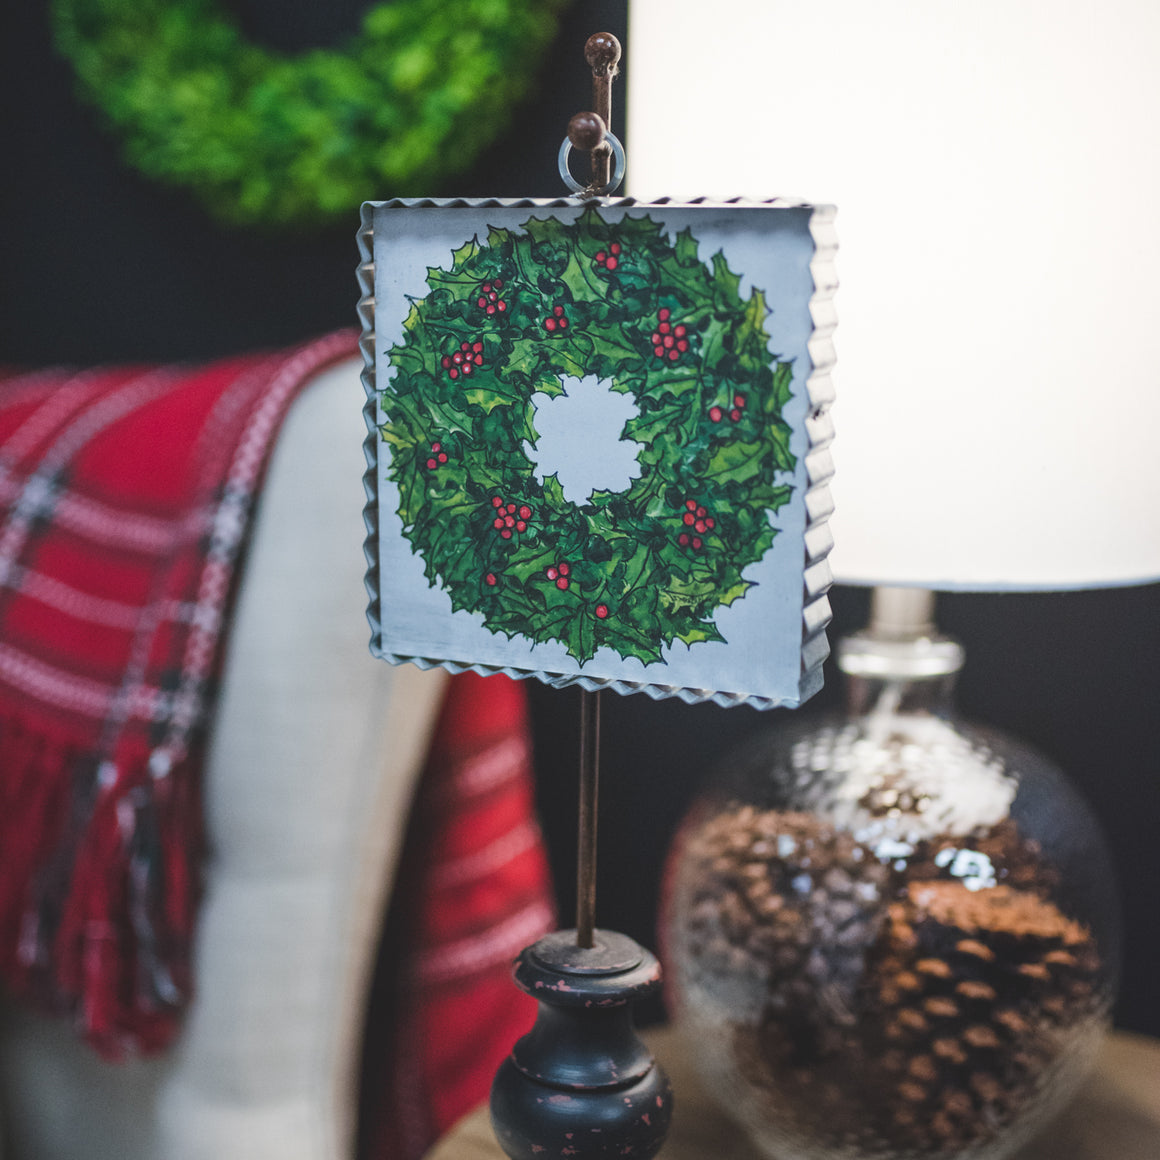 This little wall hanging features a pretty painting of a holly wreath. The border is created with a corrugated metal piece, adding to the rustic charm.